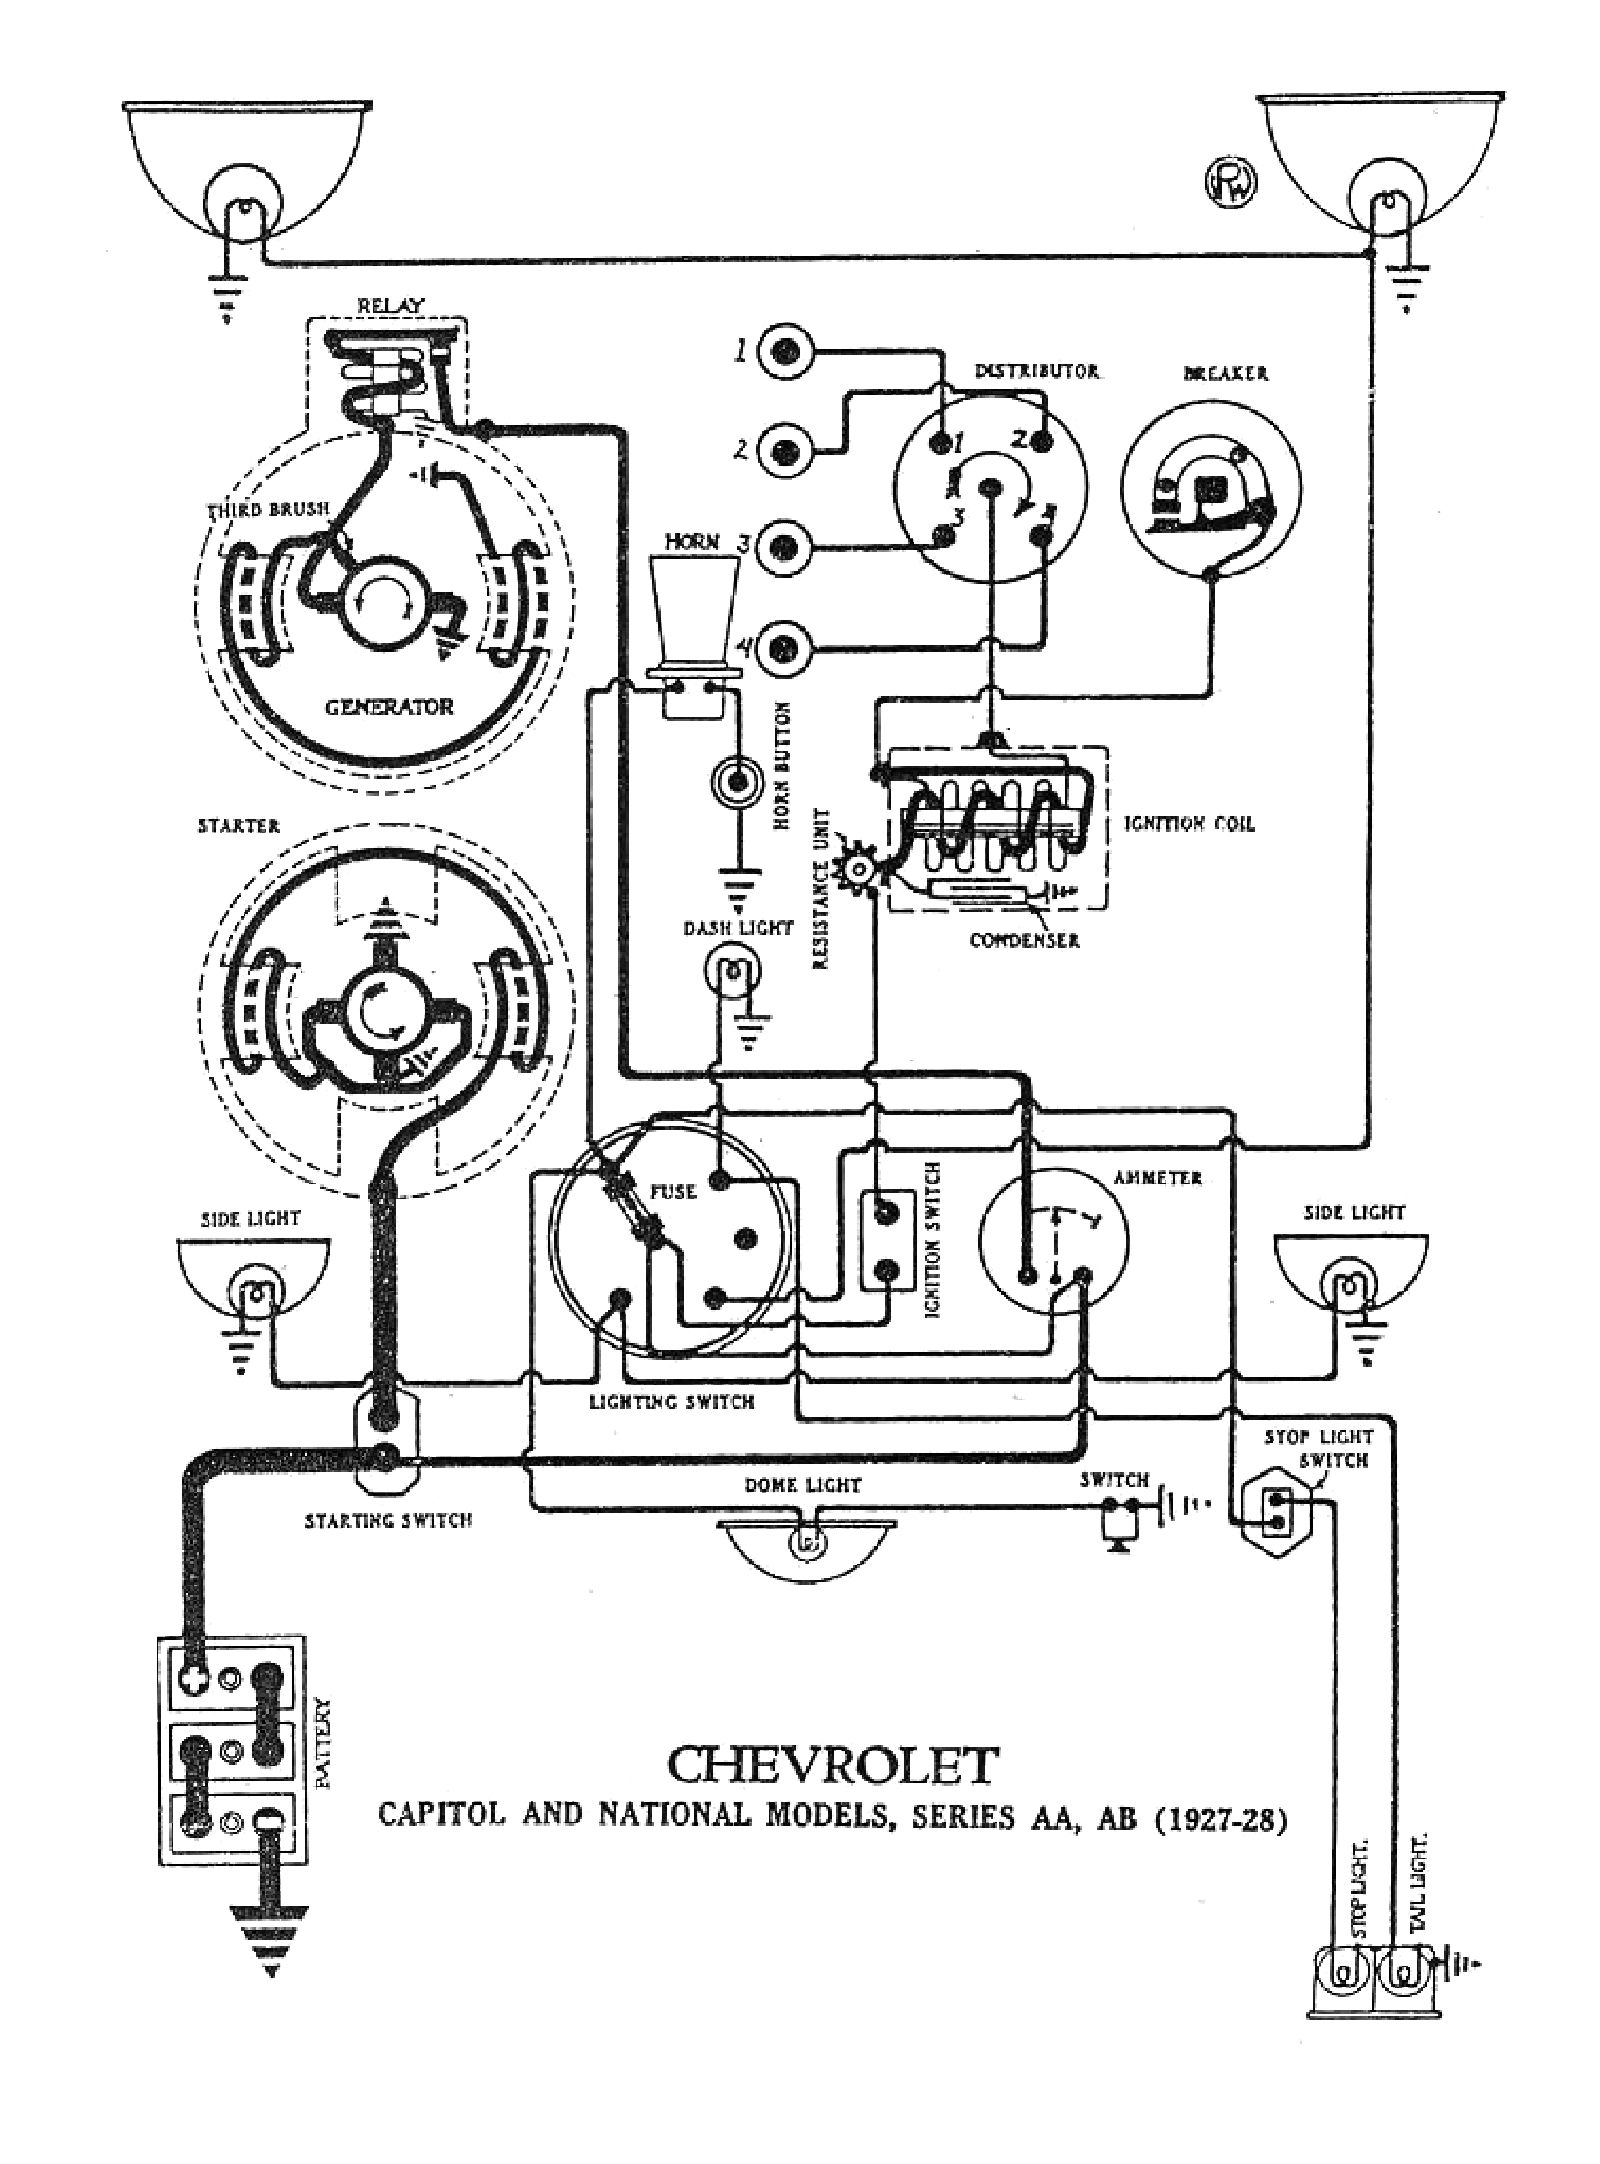 hight resolution of 1972 corvette ignition coil wiring diagram basic simple wiring diagram rh david huggett co uk